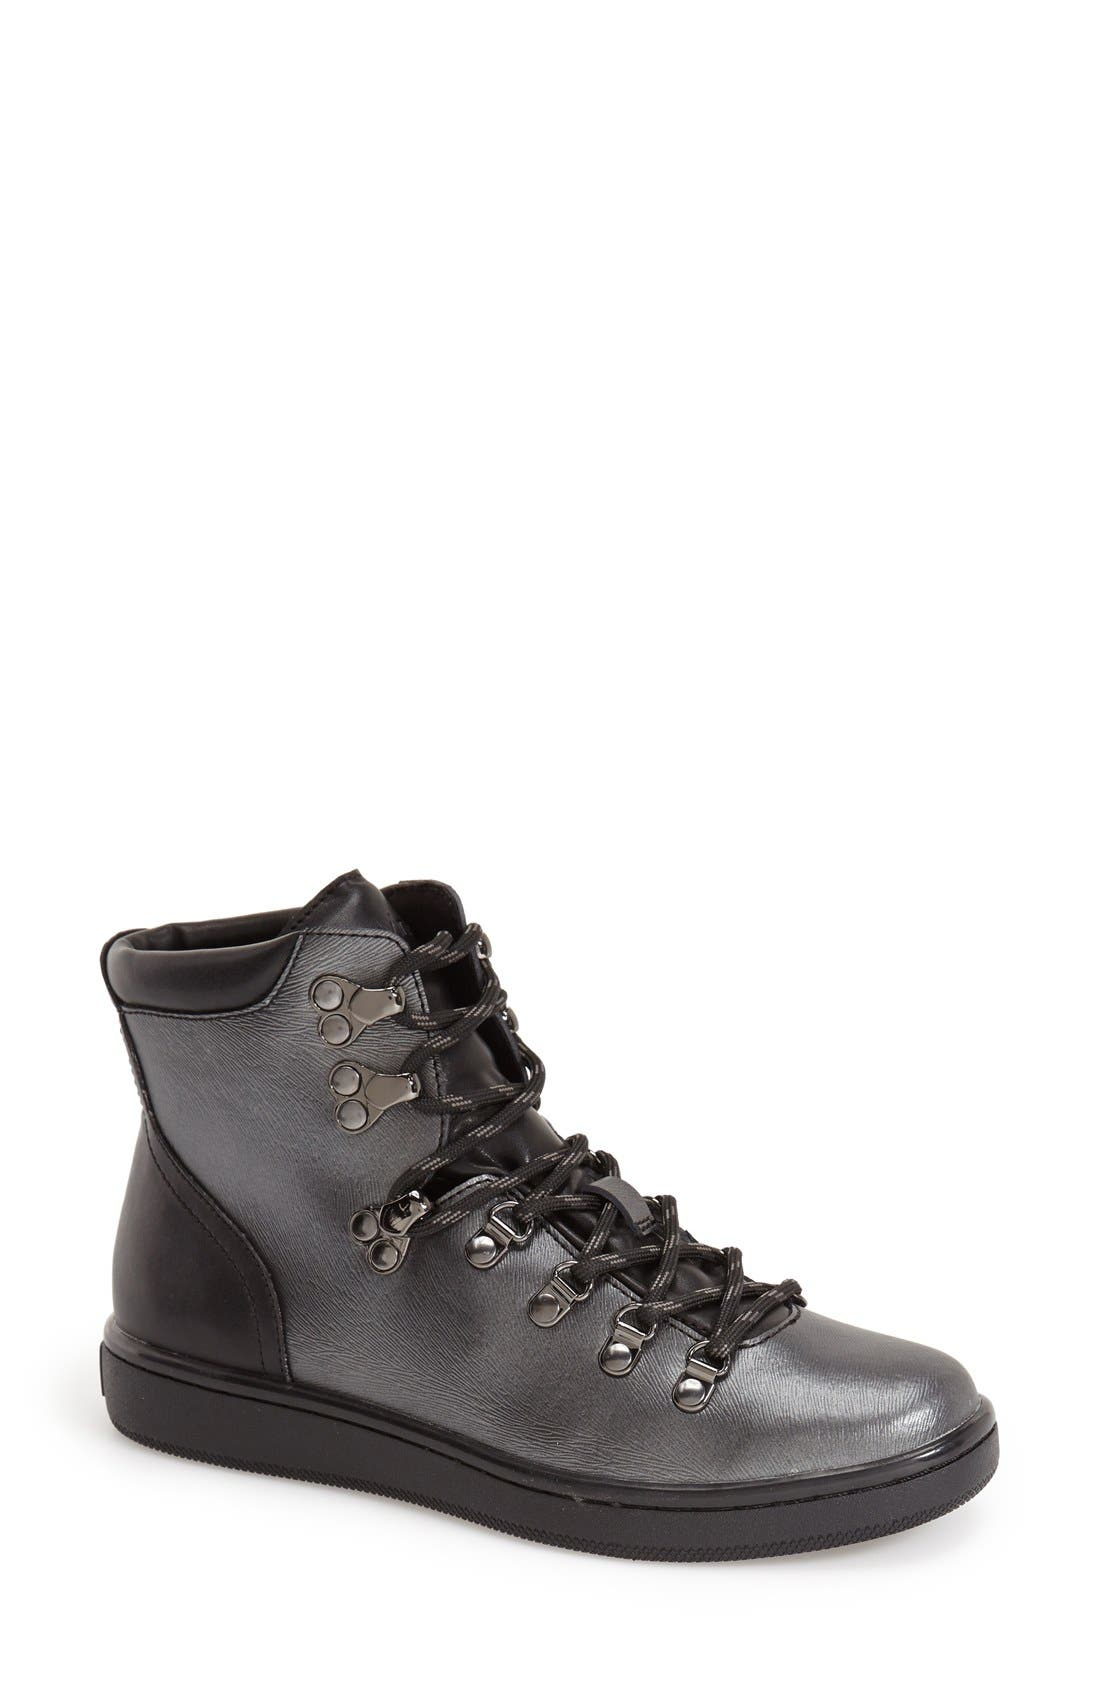 Alternate Image 1 Selected - Calvin Klein 'Dita' Sneaker Boot (Women)